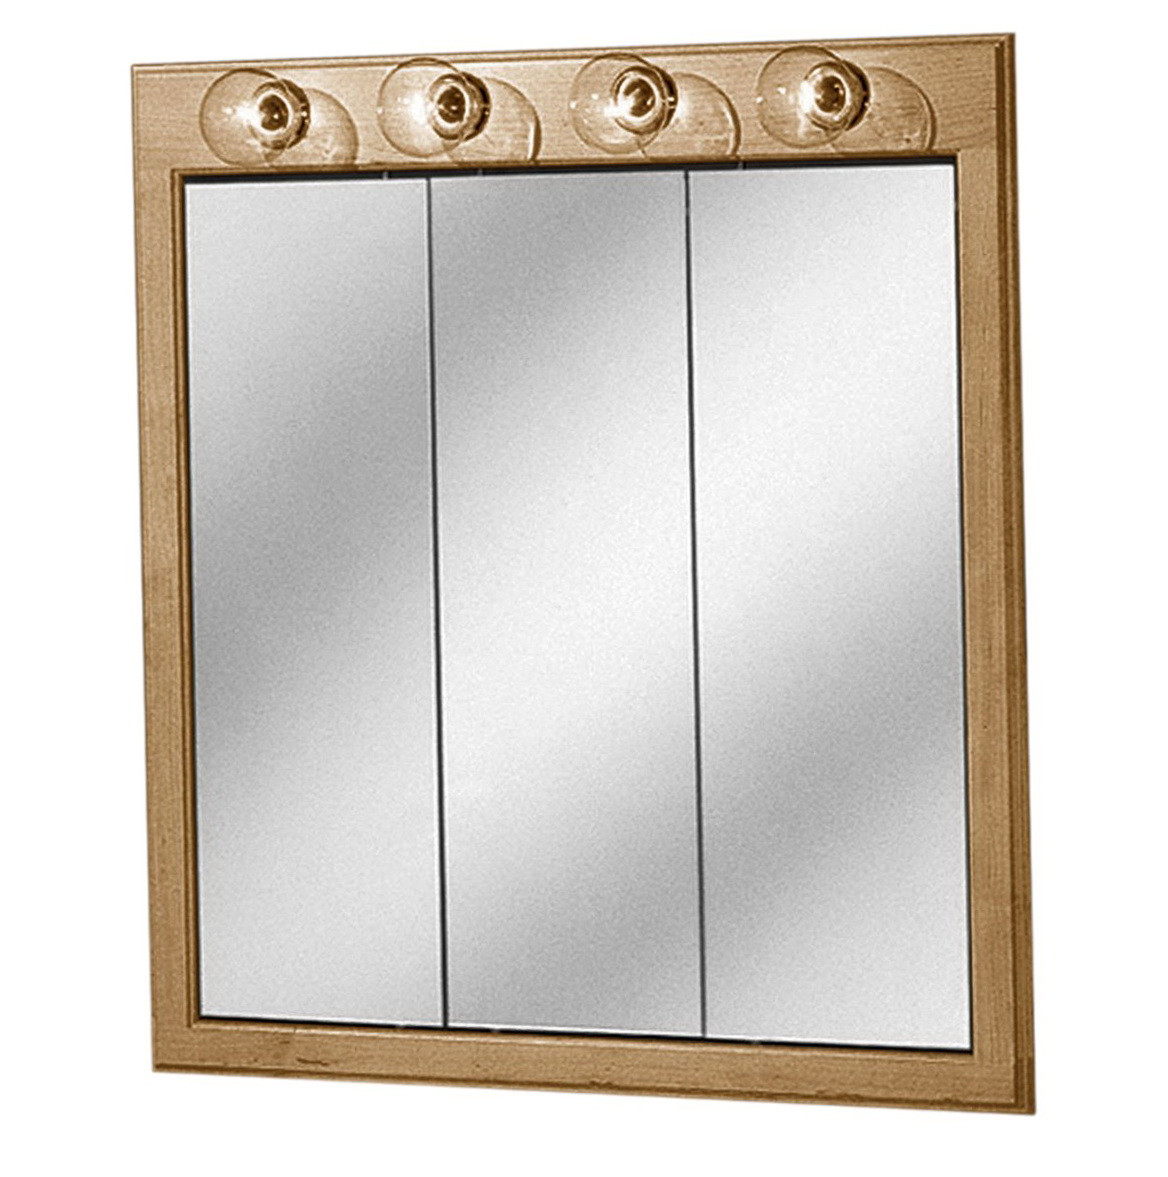 Best ideas about Lighted Medicine Cabinet . Save or Pin Lighted Mirror Medicine Cabinet Now.